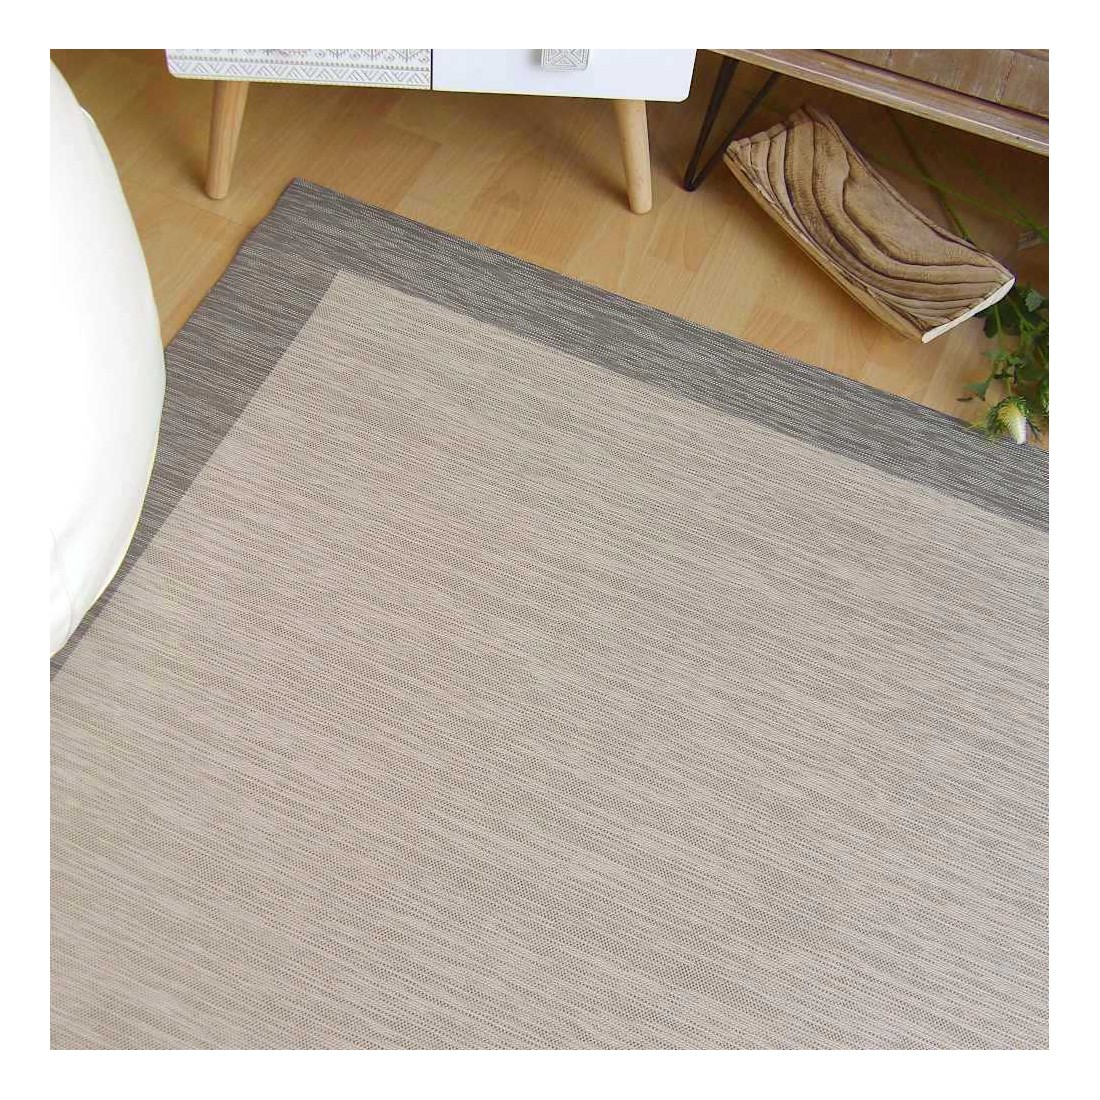 How To Remove Stains From Woven Vinyl Rugs & Flooring ECO Beauty